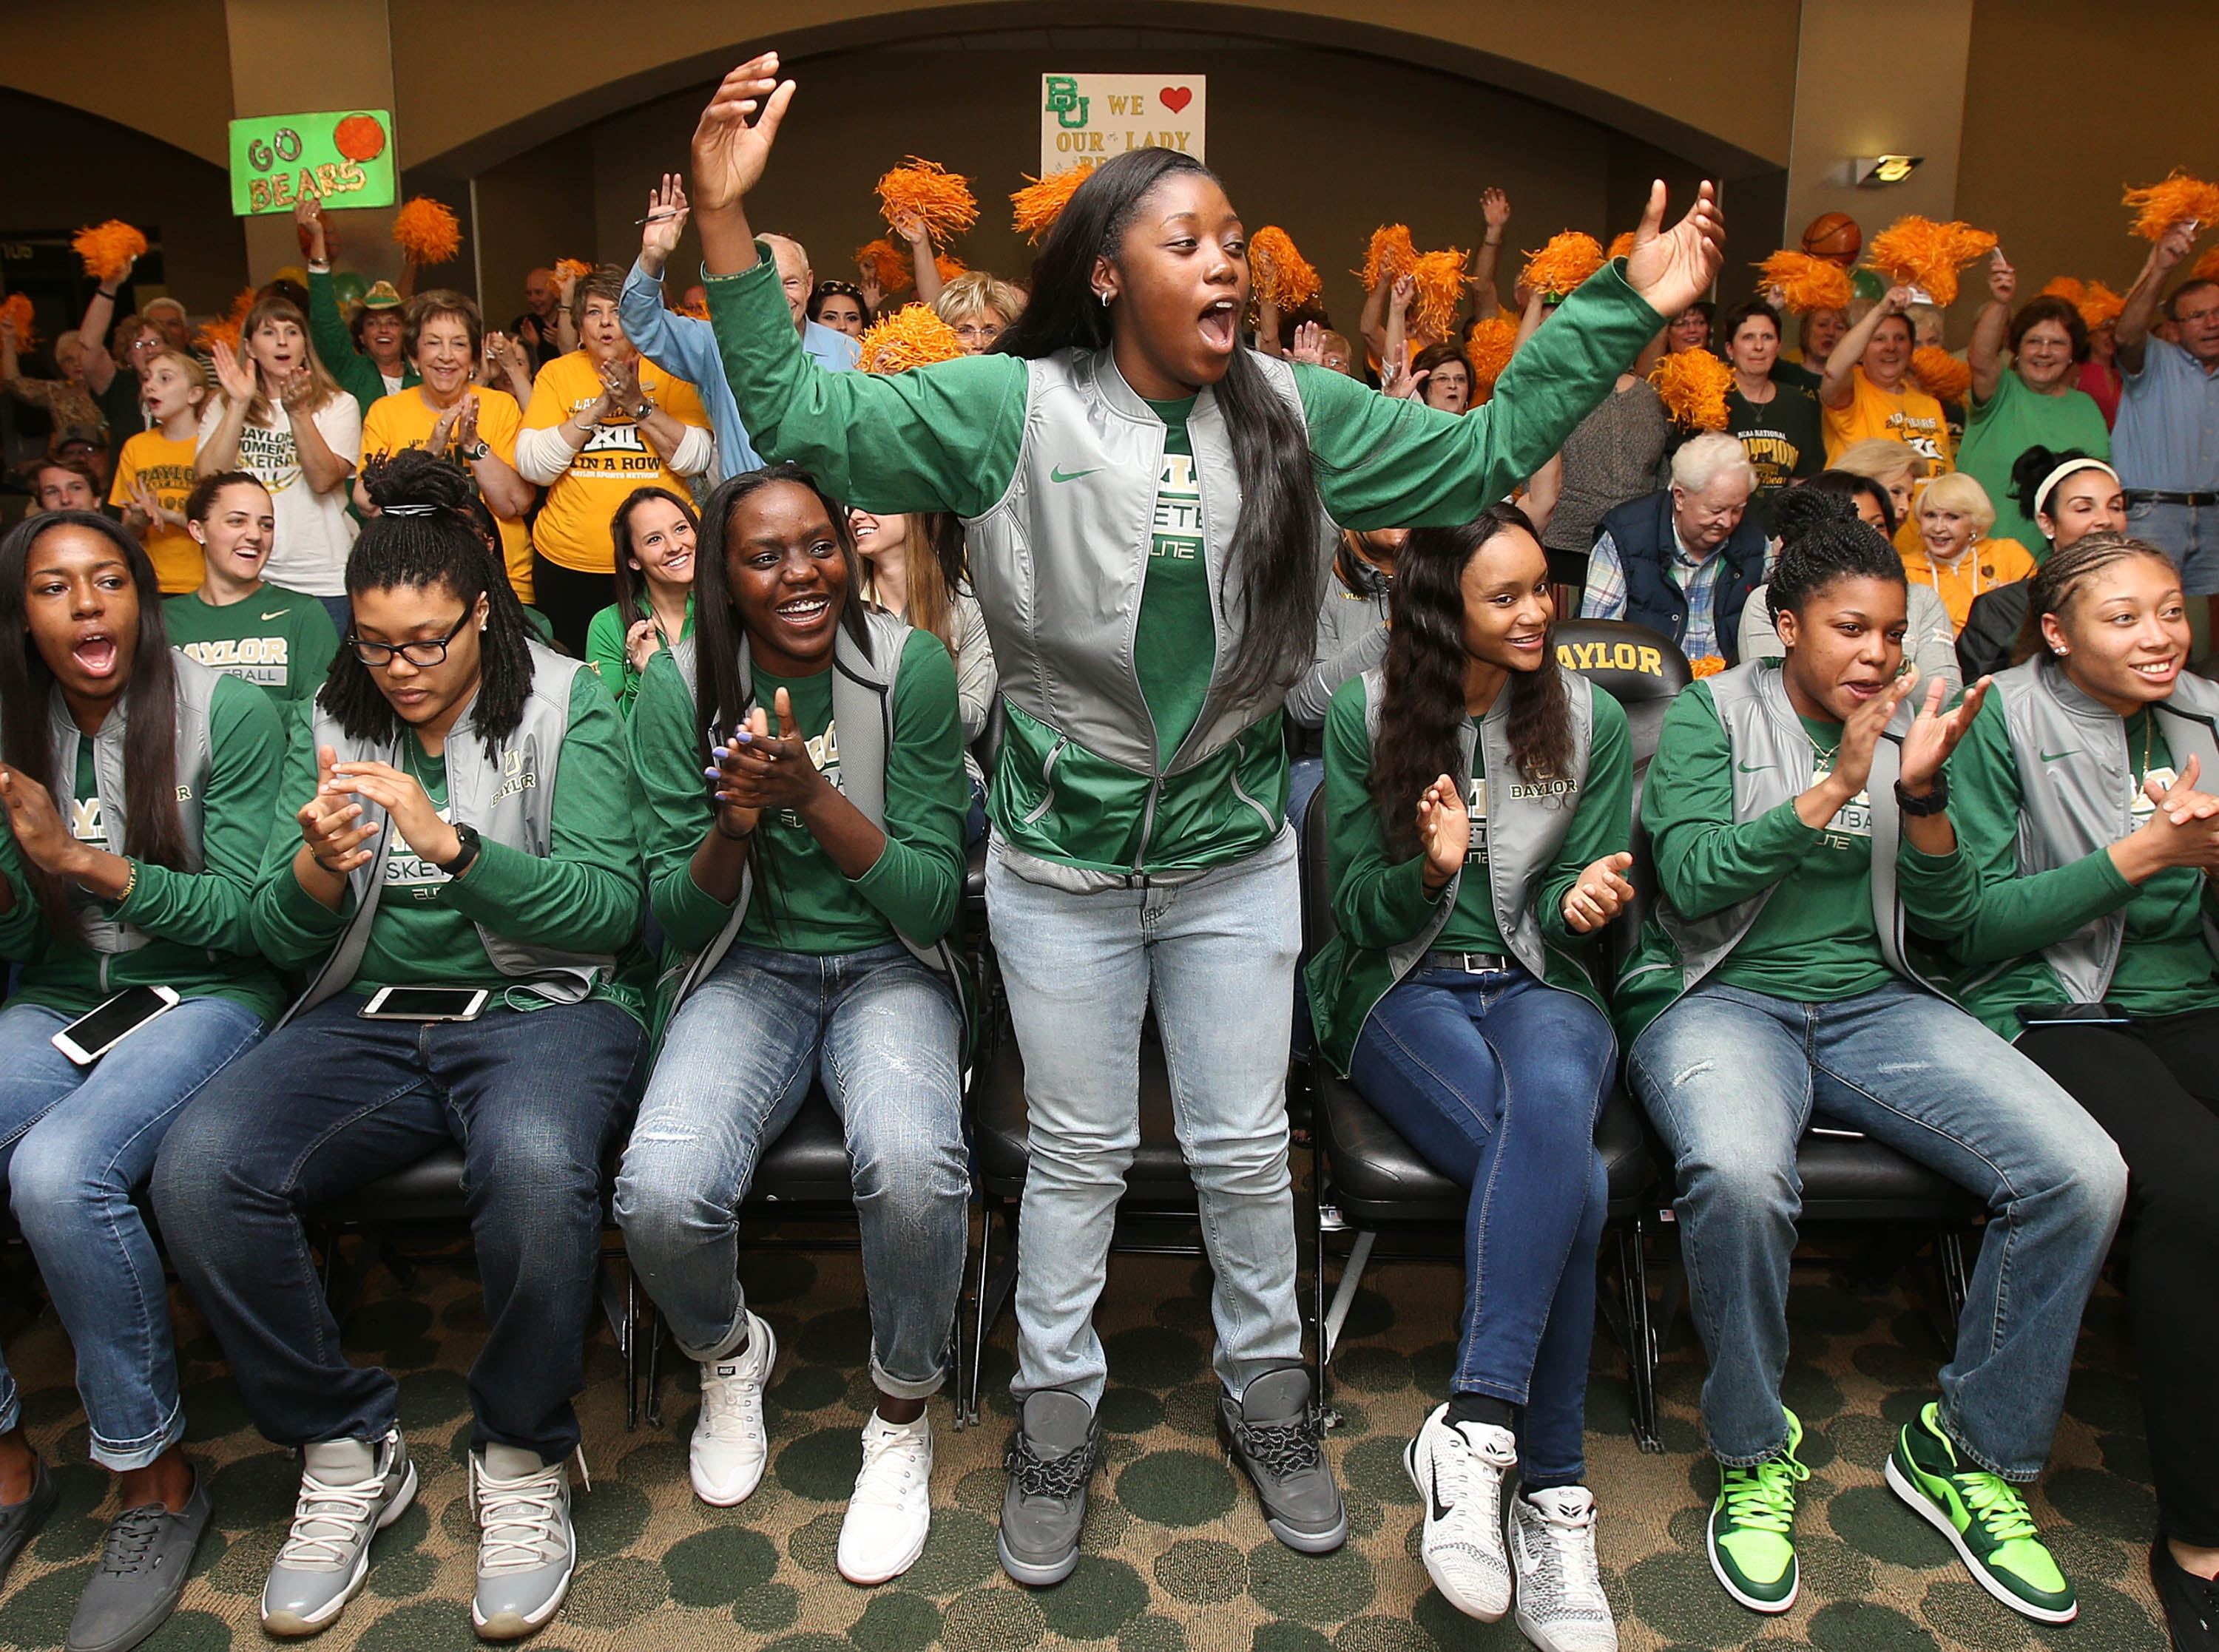 Baylor's Alexis Jones reacts with her teammates during the women's NCAA college basketball tournament selection show in Waco, Texas, Monday, March 14, 2016. Baylor was selected as a No. 1 seed and will play Idaho in the first round of the NCAA tournament.